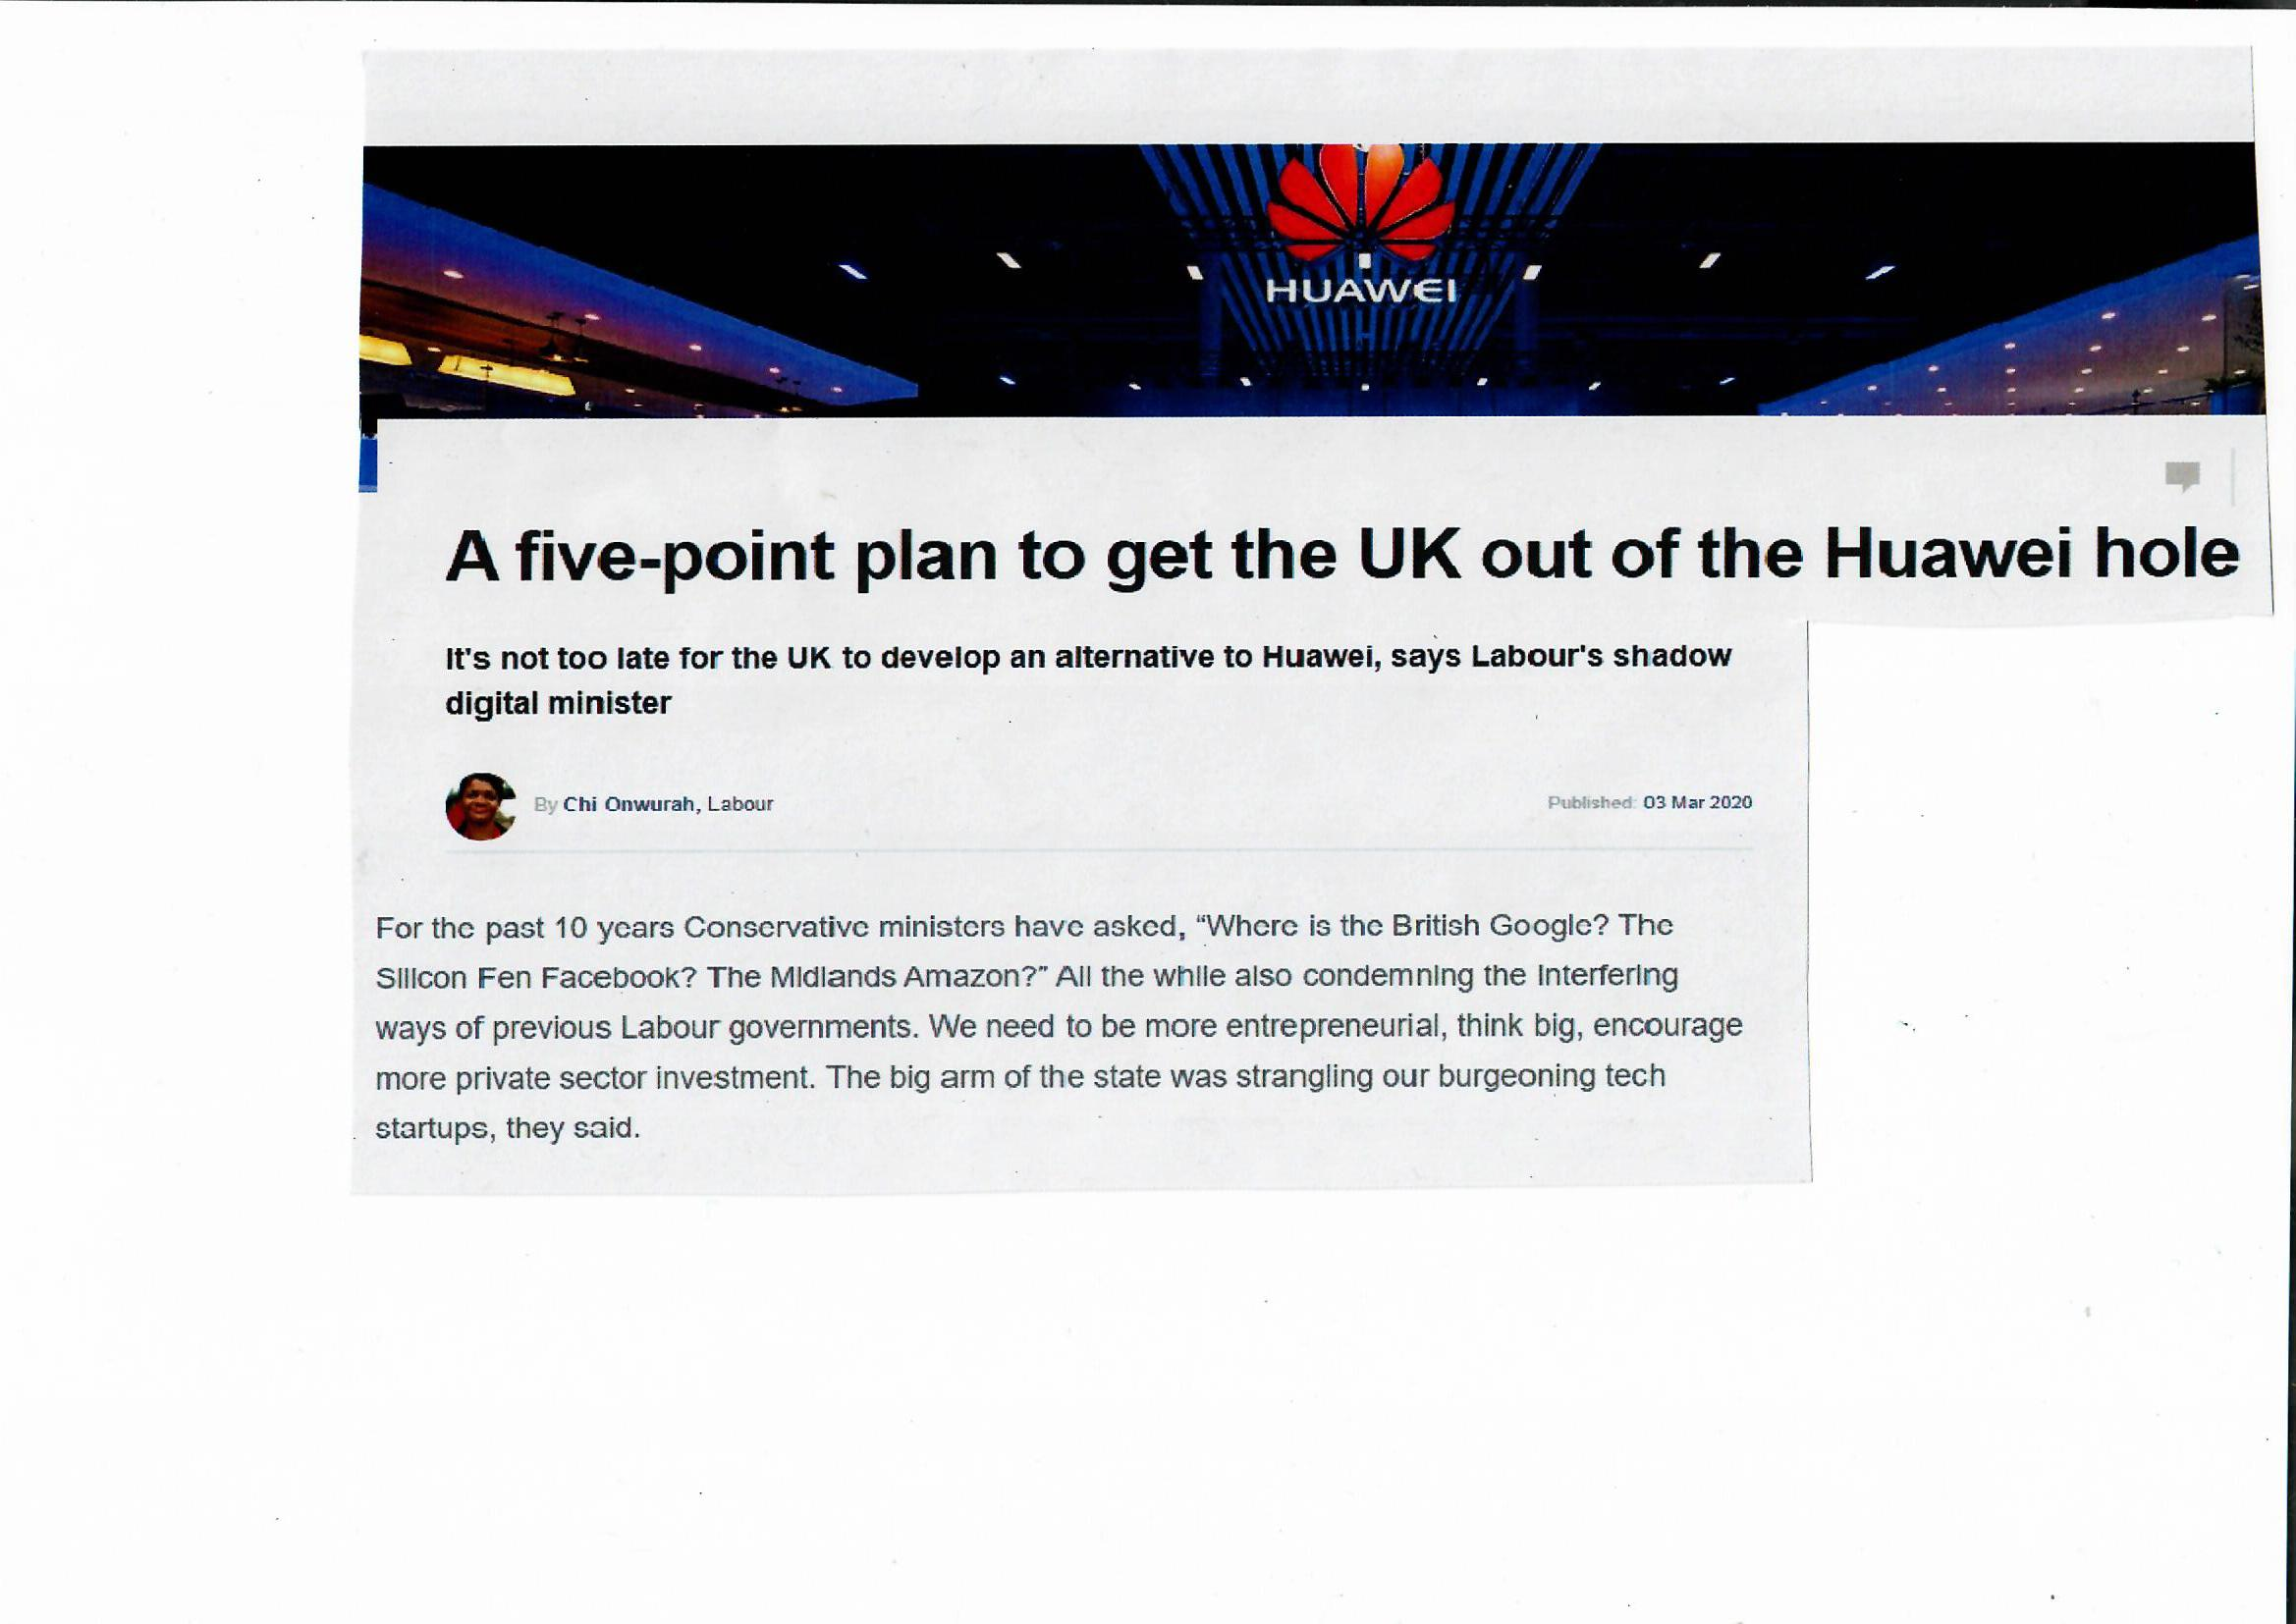 A five-point plan to get the UK out of the Huawei hole